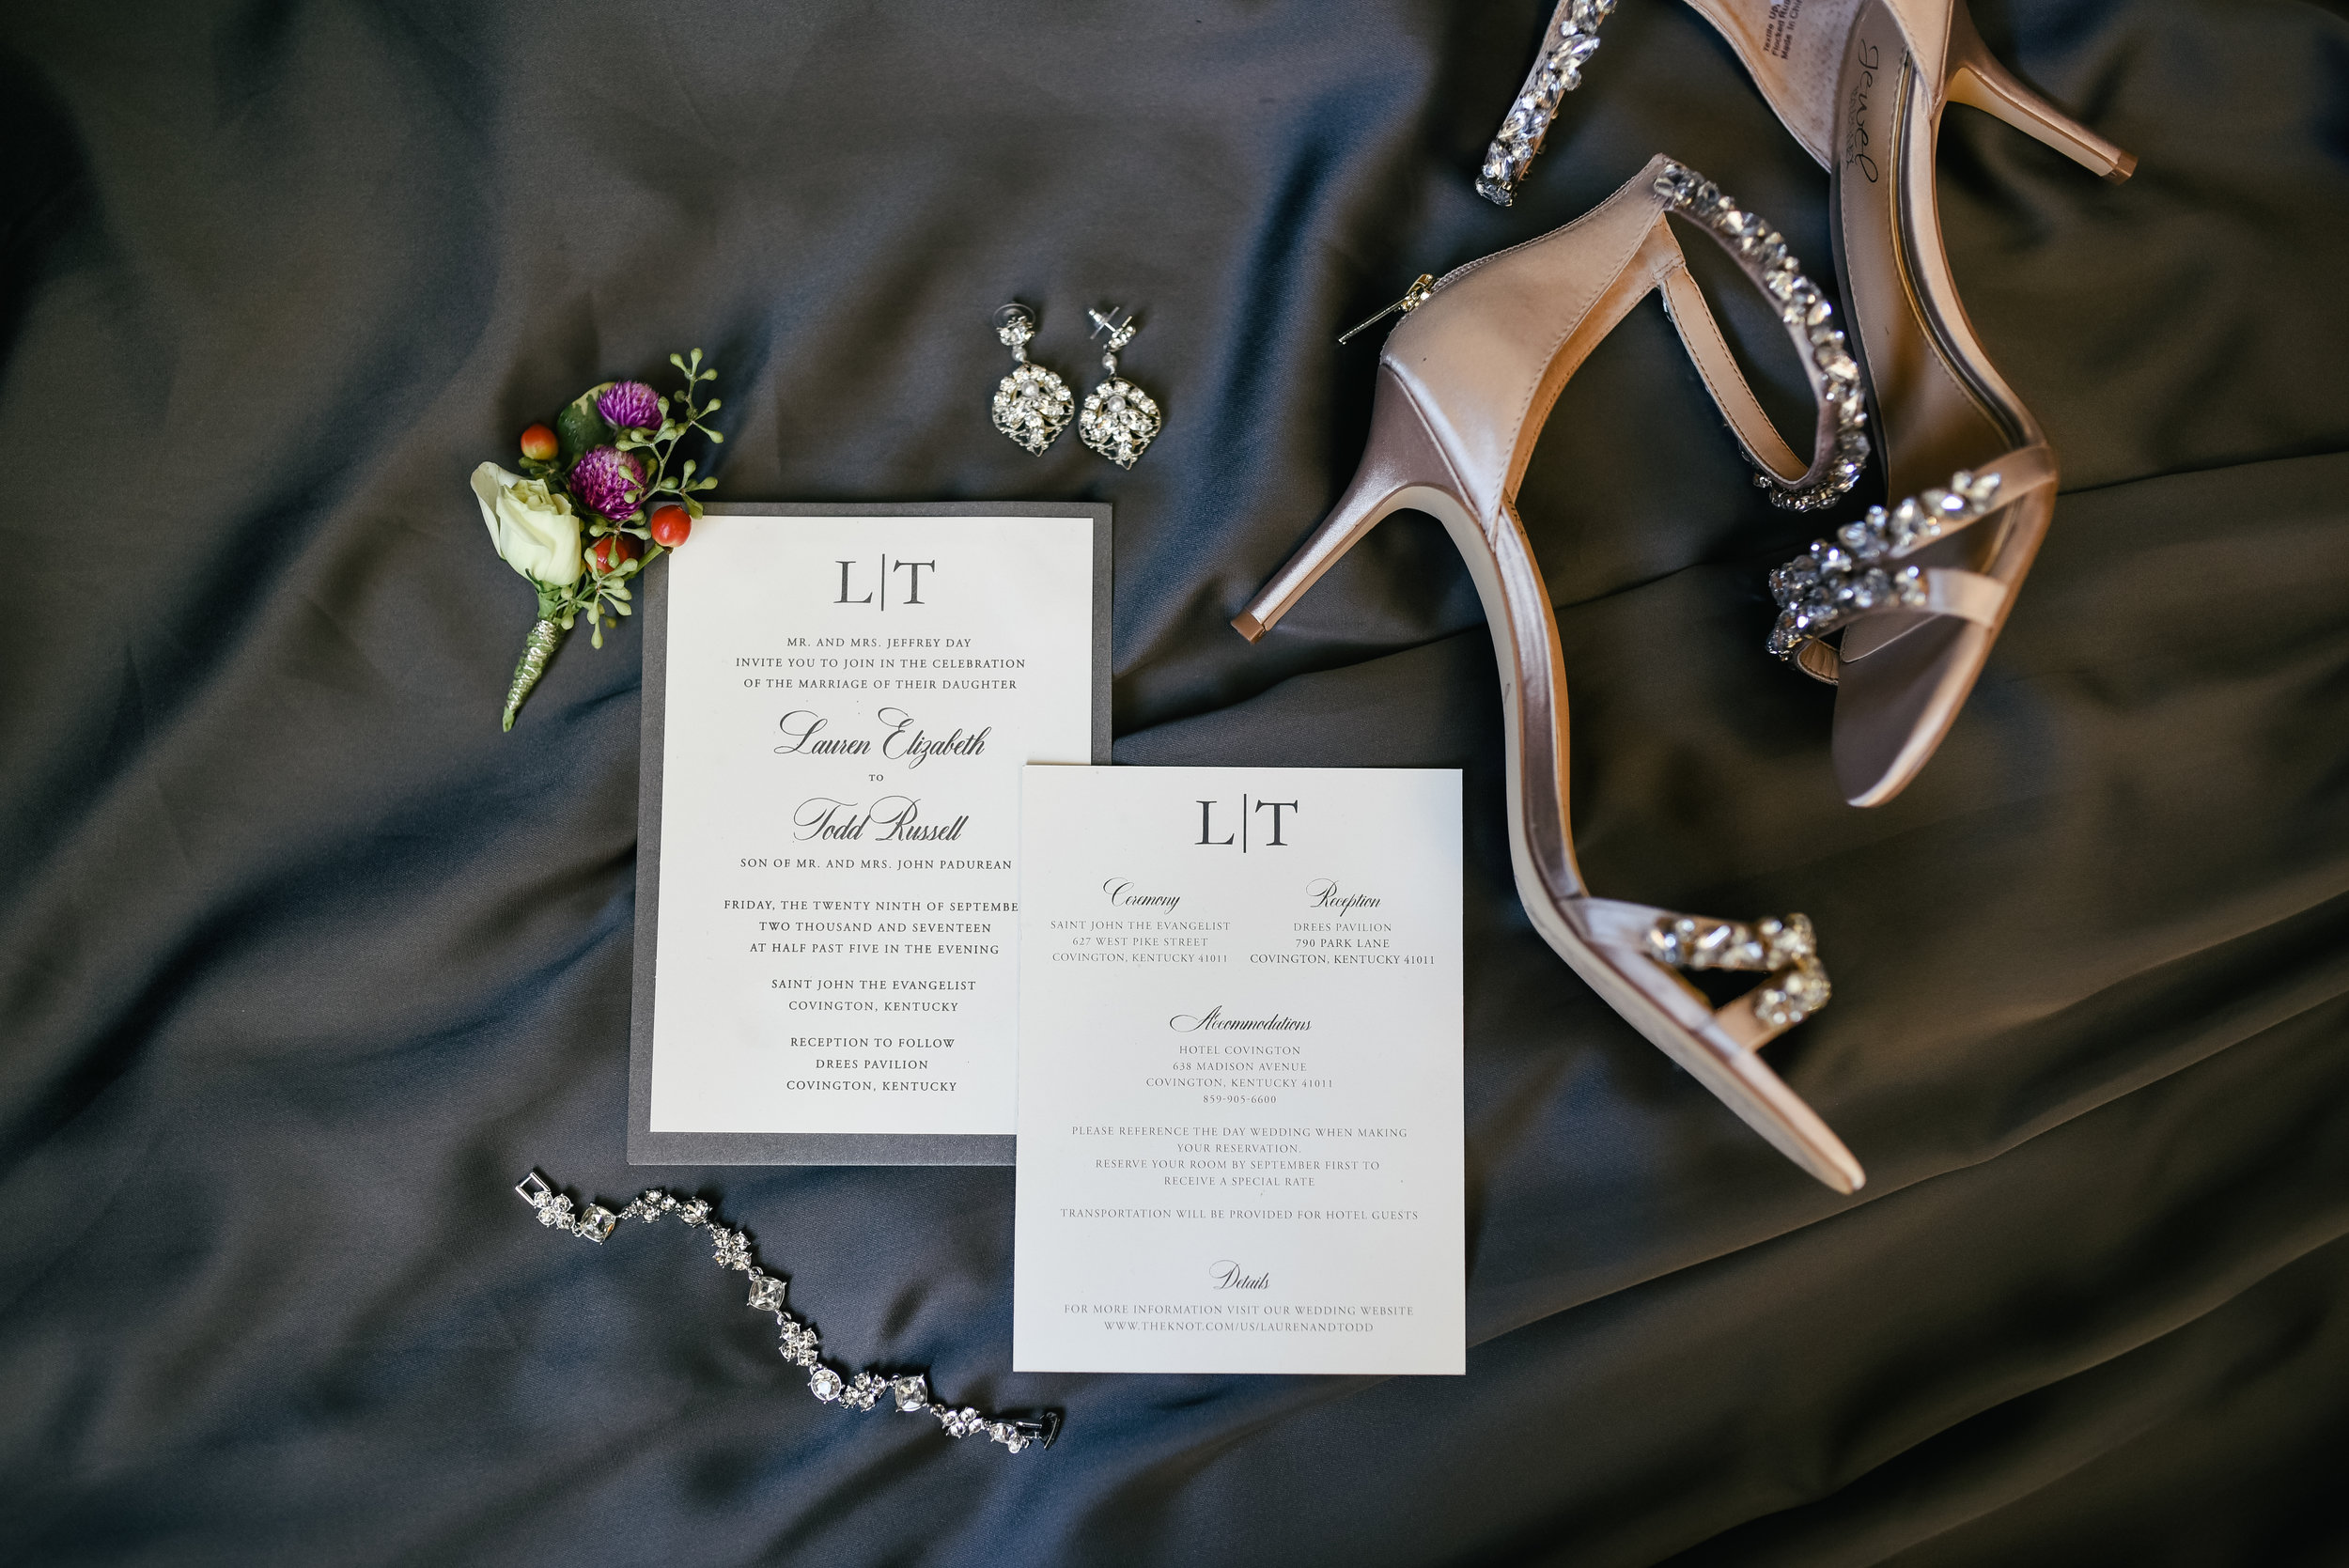 Lauren and Todd's Wedding in Covington Kentucky with Event Coordination by Event Prep